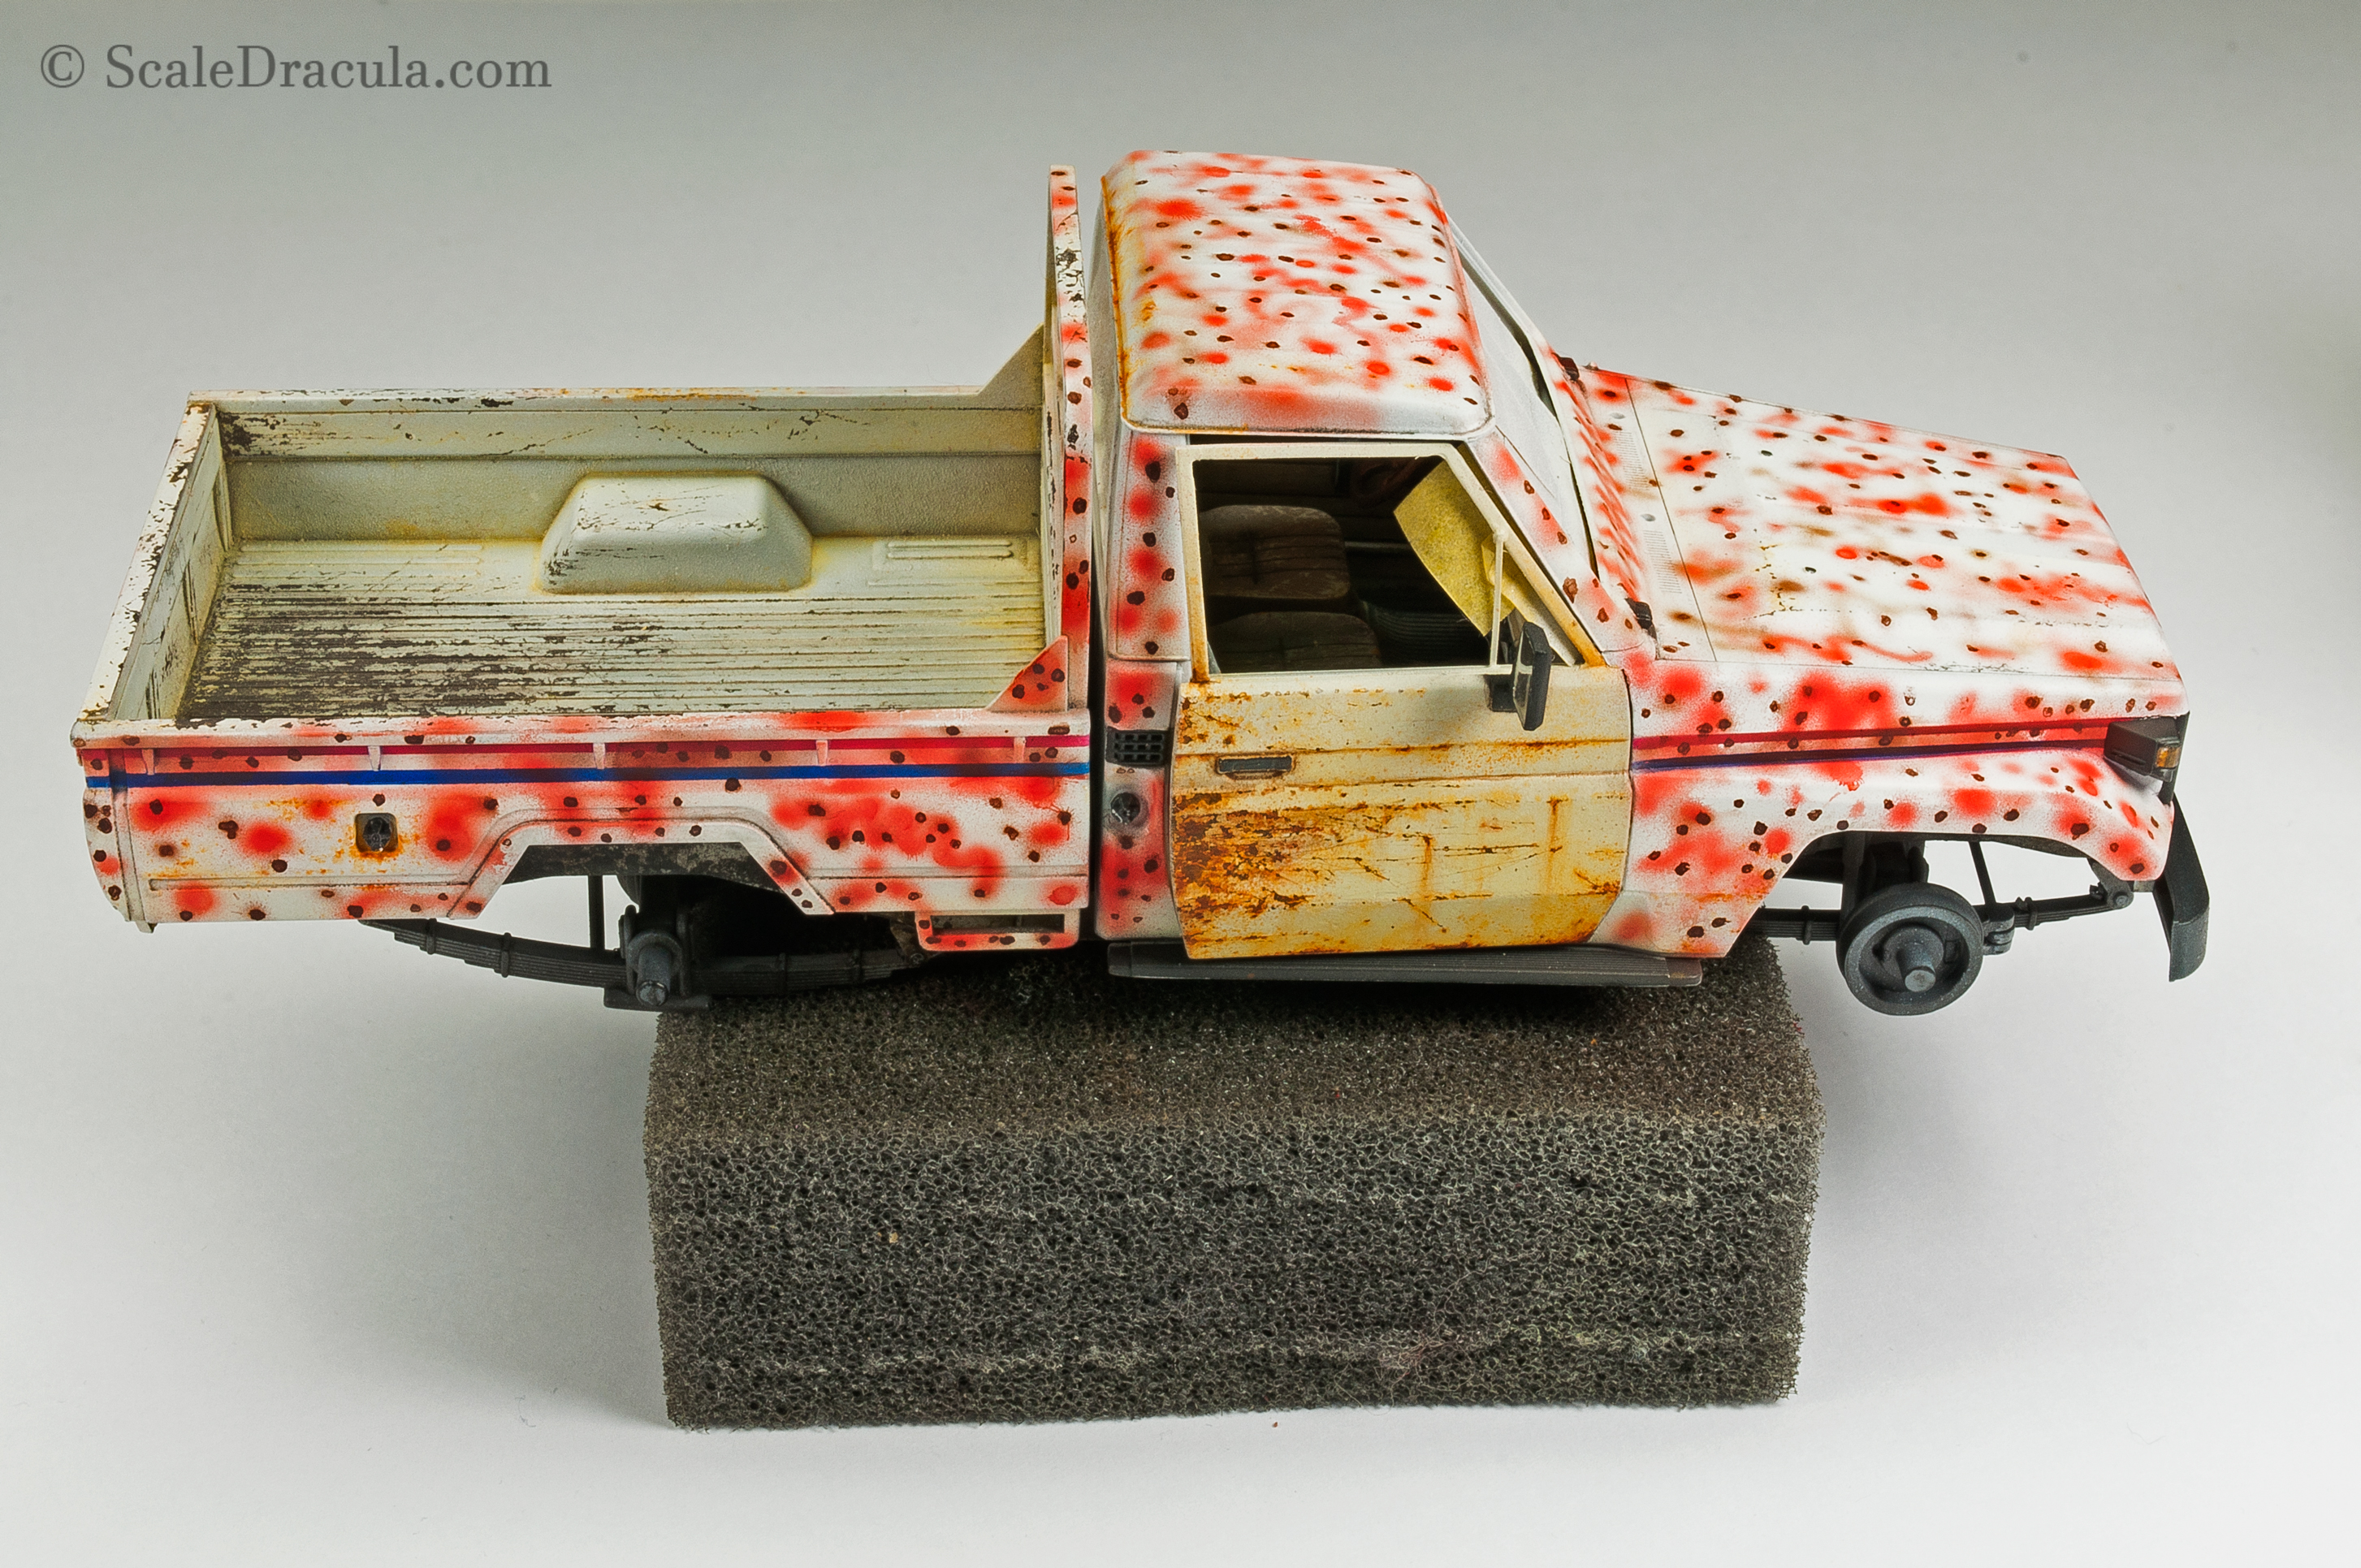 Painting the improvised camouflage with Tamiya paints, Toyota technical by Meng